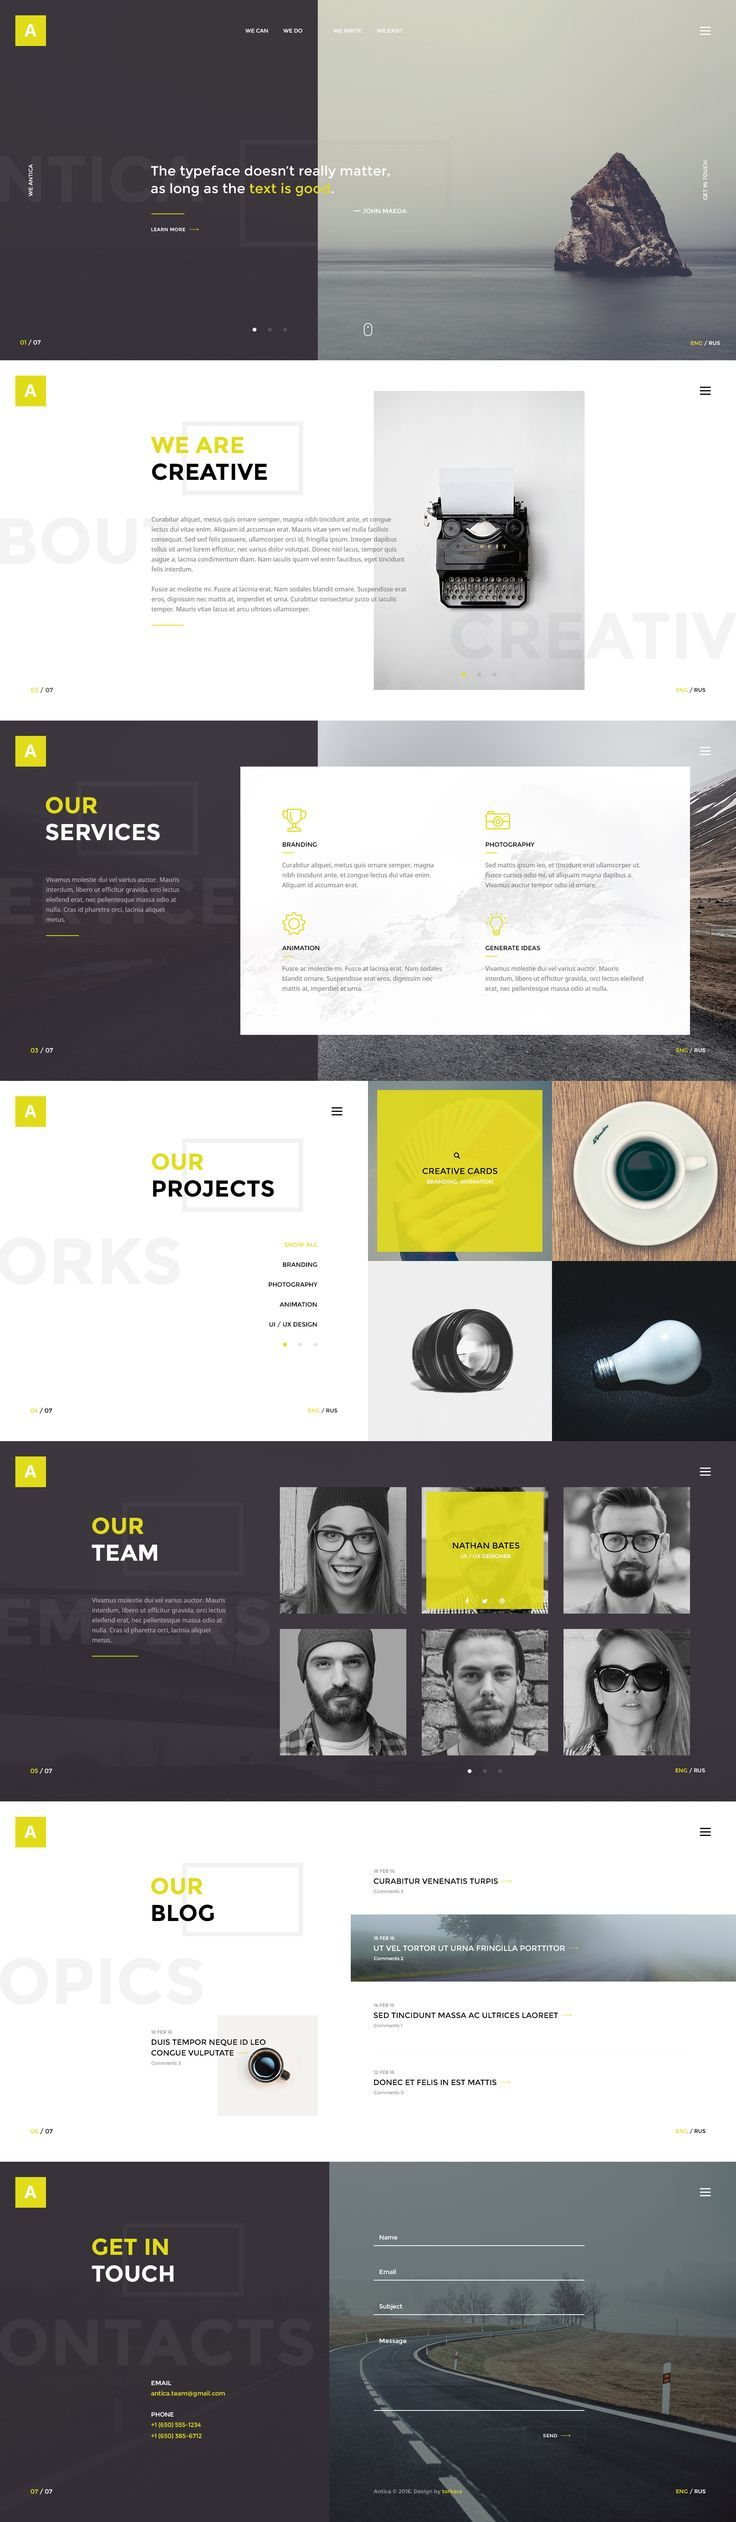 Best 25+ Web design ideas on Pinterest | Website design ...